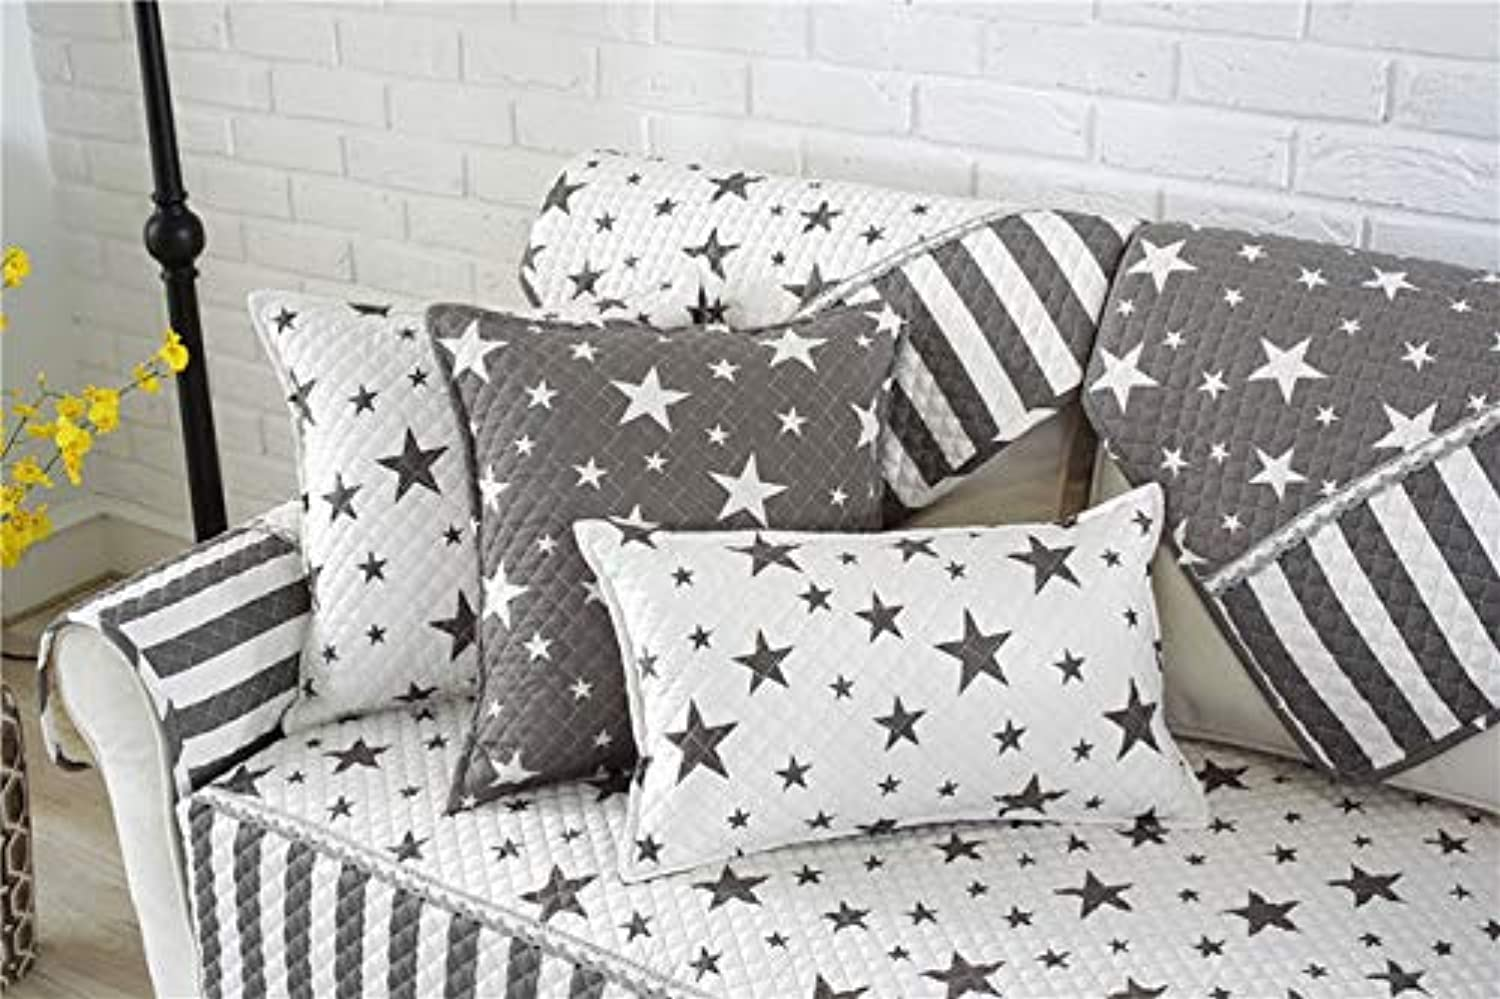 Les Baoyi Modern Style Star Printed Sofa Cover Quilted Slipcovers Cotton Anti-Slip Canape Furniture Cover Fundas de Sofa   LK4004B, 90x90cm